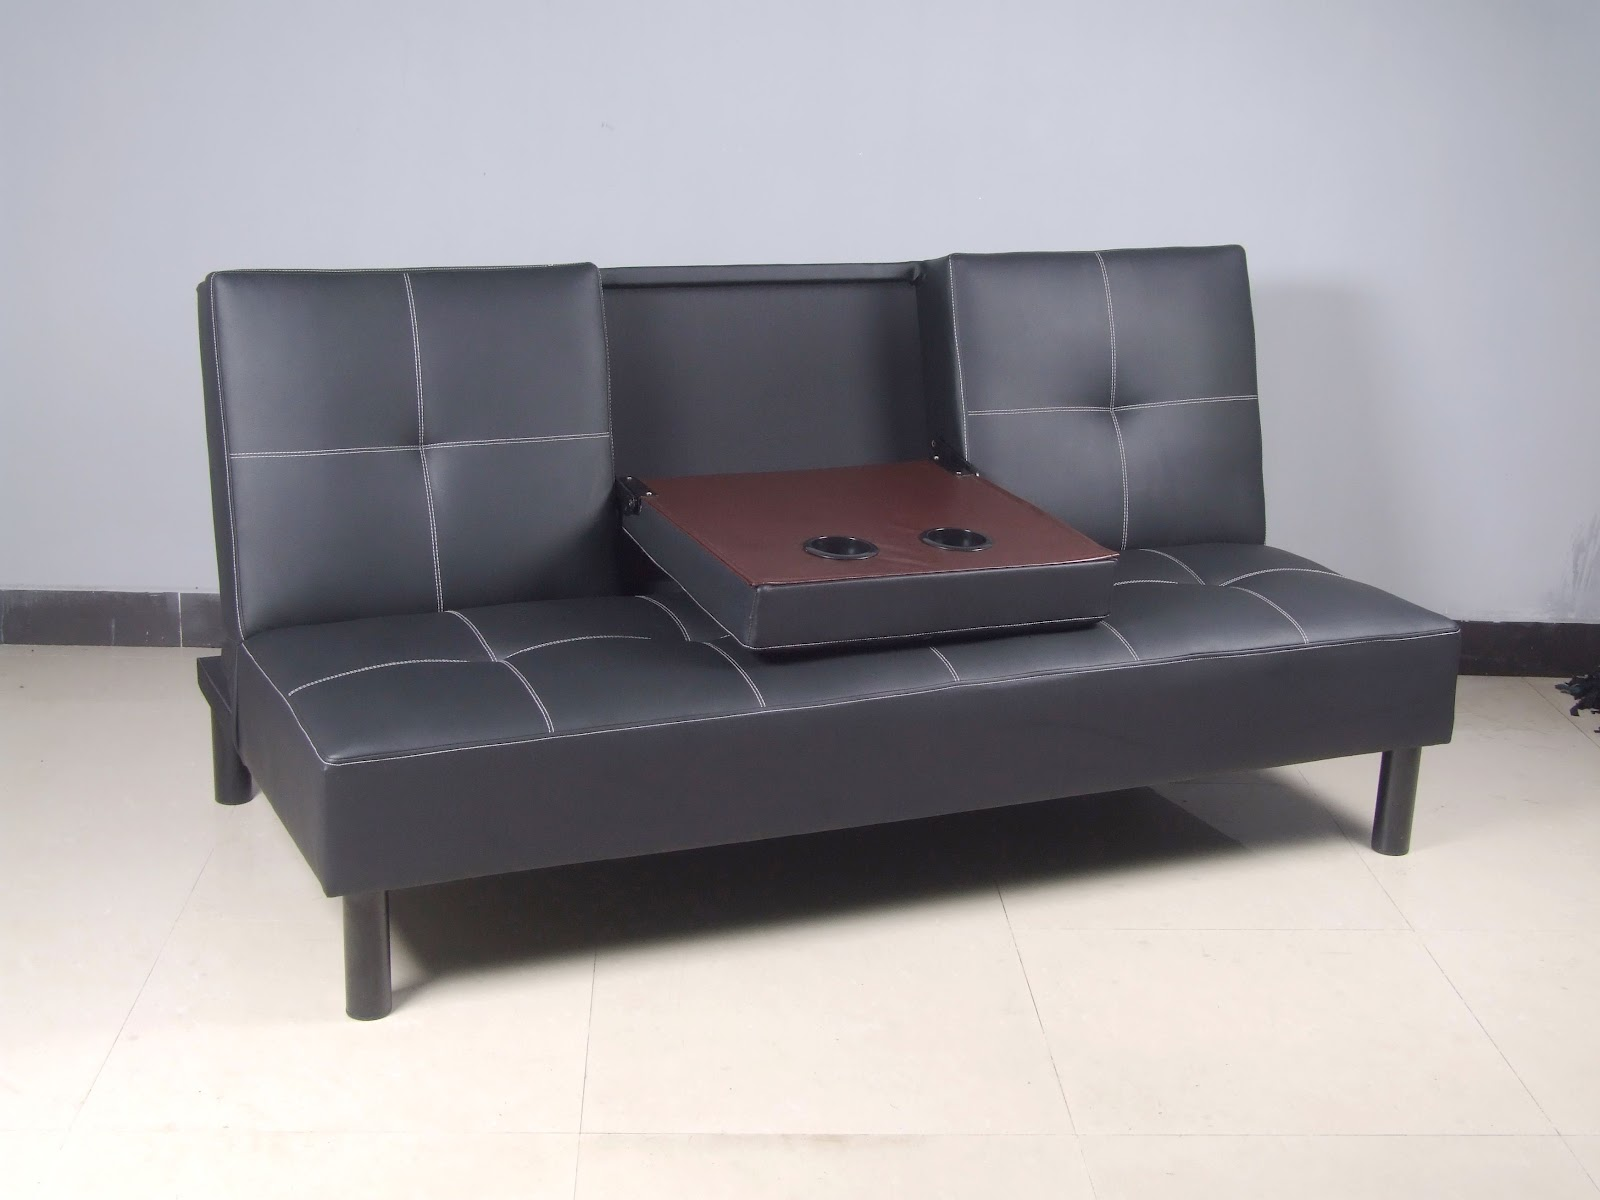 Modern Leather Furniture Of Click Clack Sofa Bed Sofa Chair Bed Modern Leather